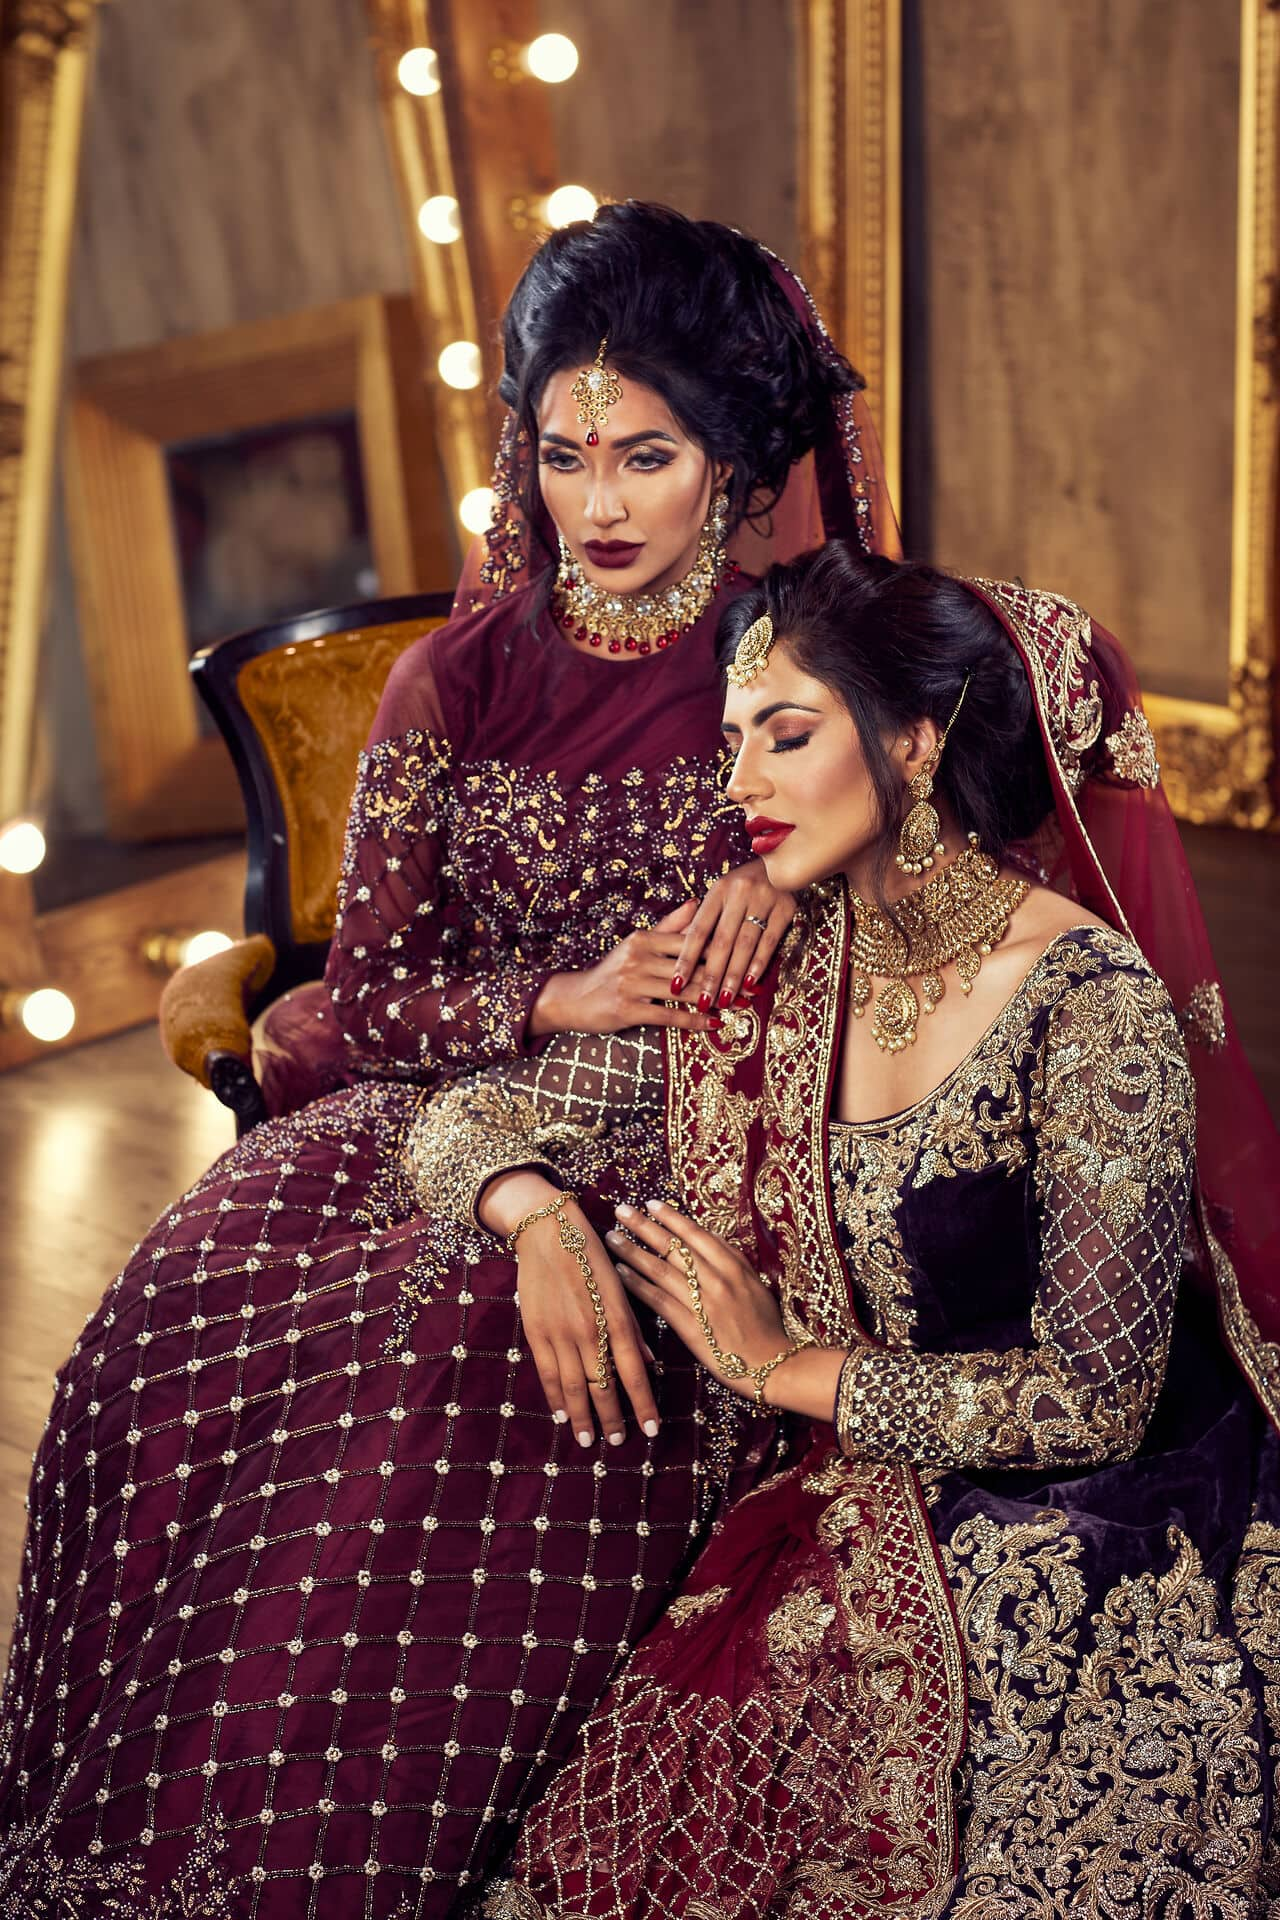 Fashion Campaign Photography London. Asian bridal collection. Photo by Jarek Duk